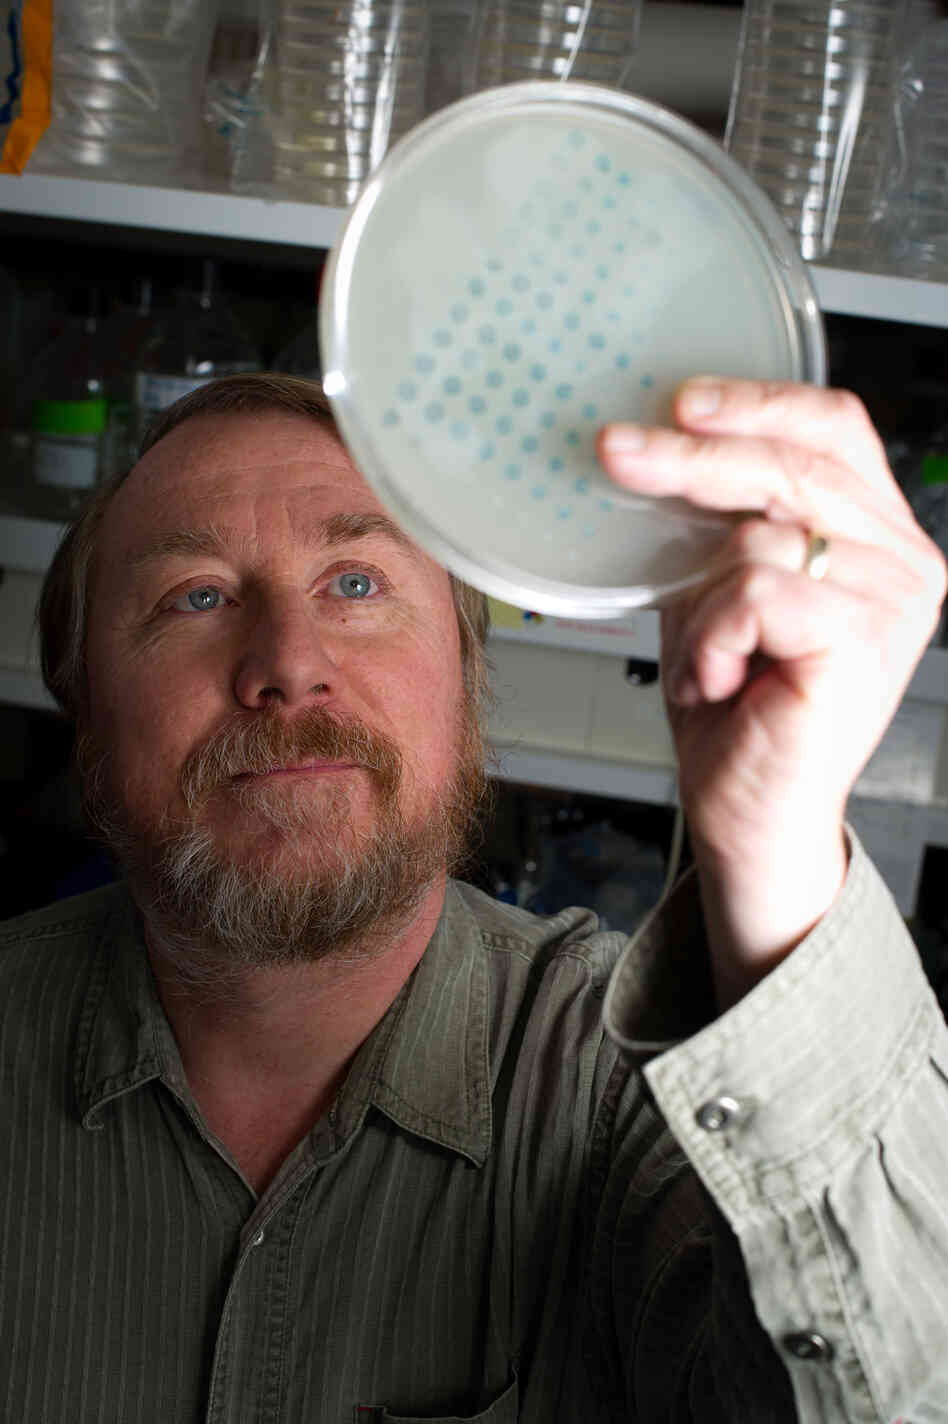 Richard Lenski examines the growth of bacteria on a plate on Jan. 12. He began an evolution experiment in 1988 with 12 identical flasks of bacteria to see if the populations would change over time in the same way.